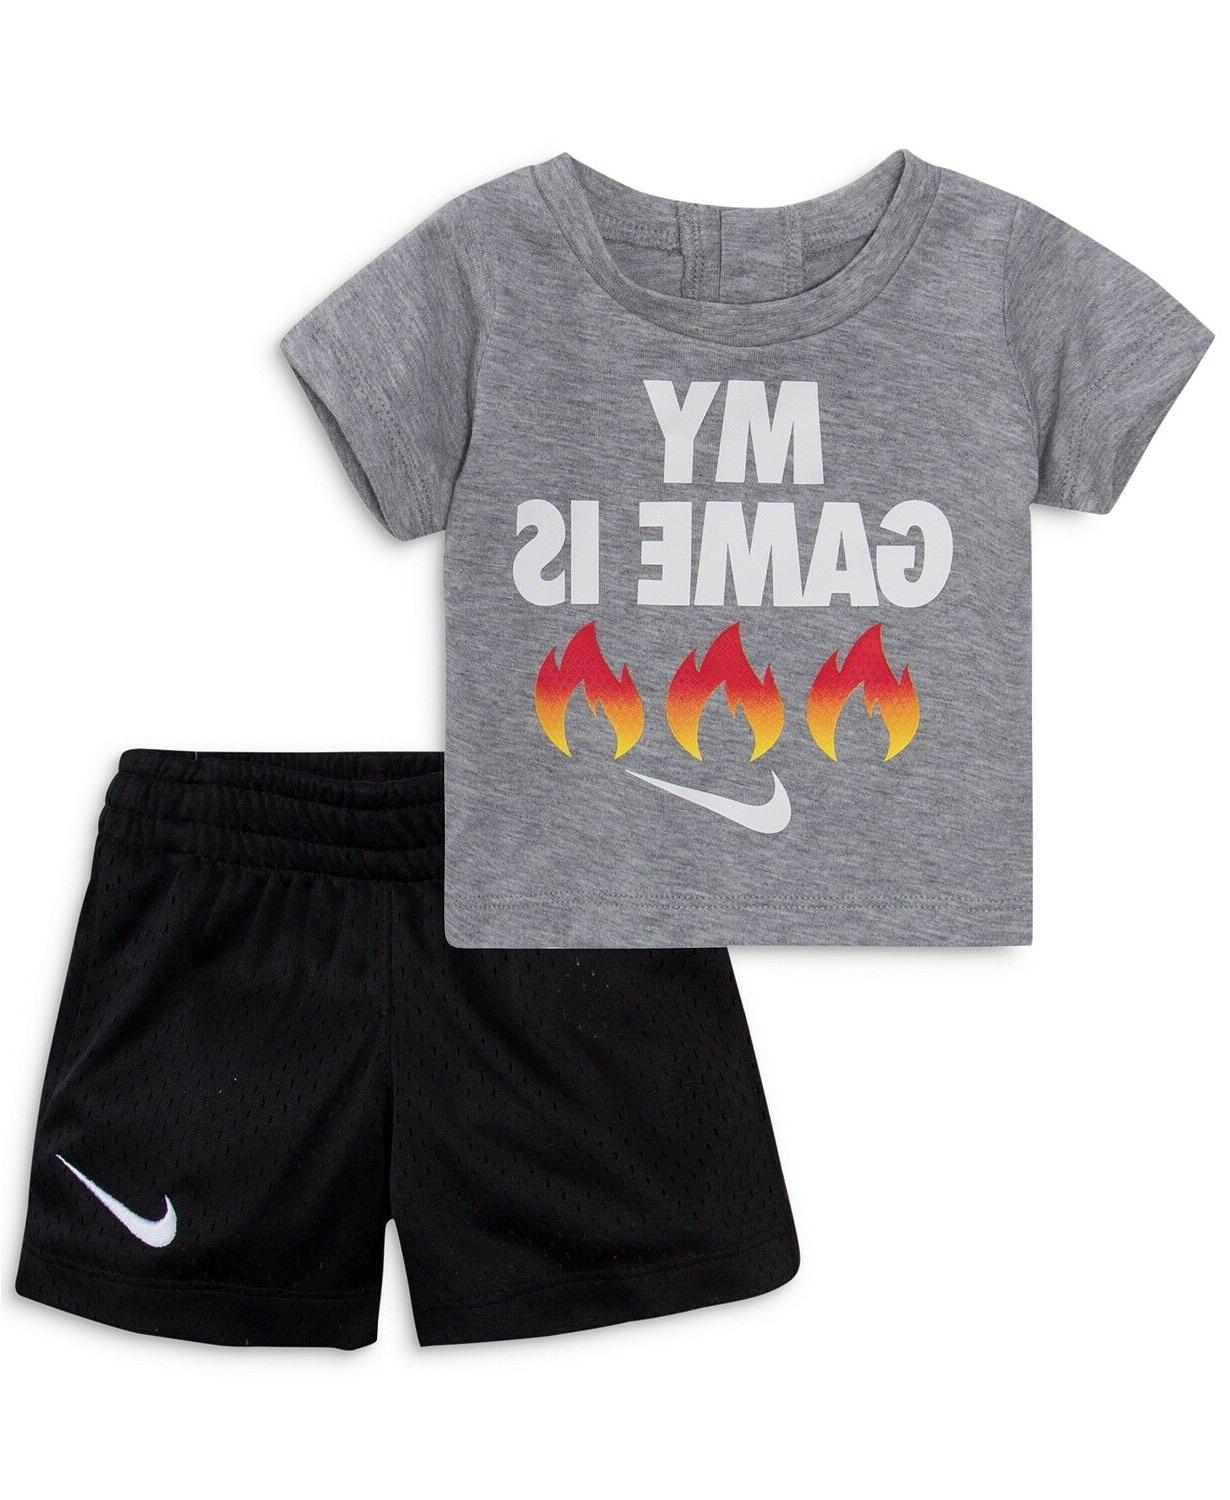 New Nike Baby Graphic Print Shorts Set and Color